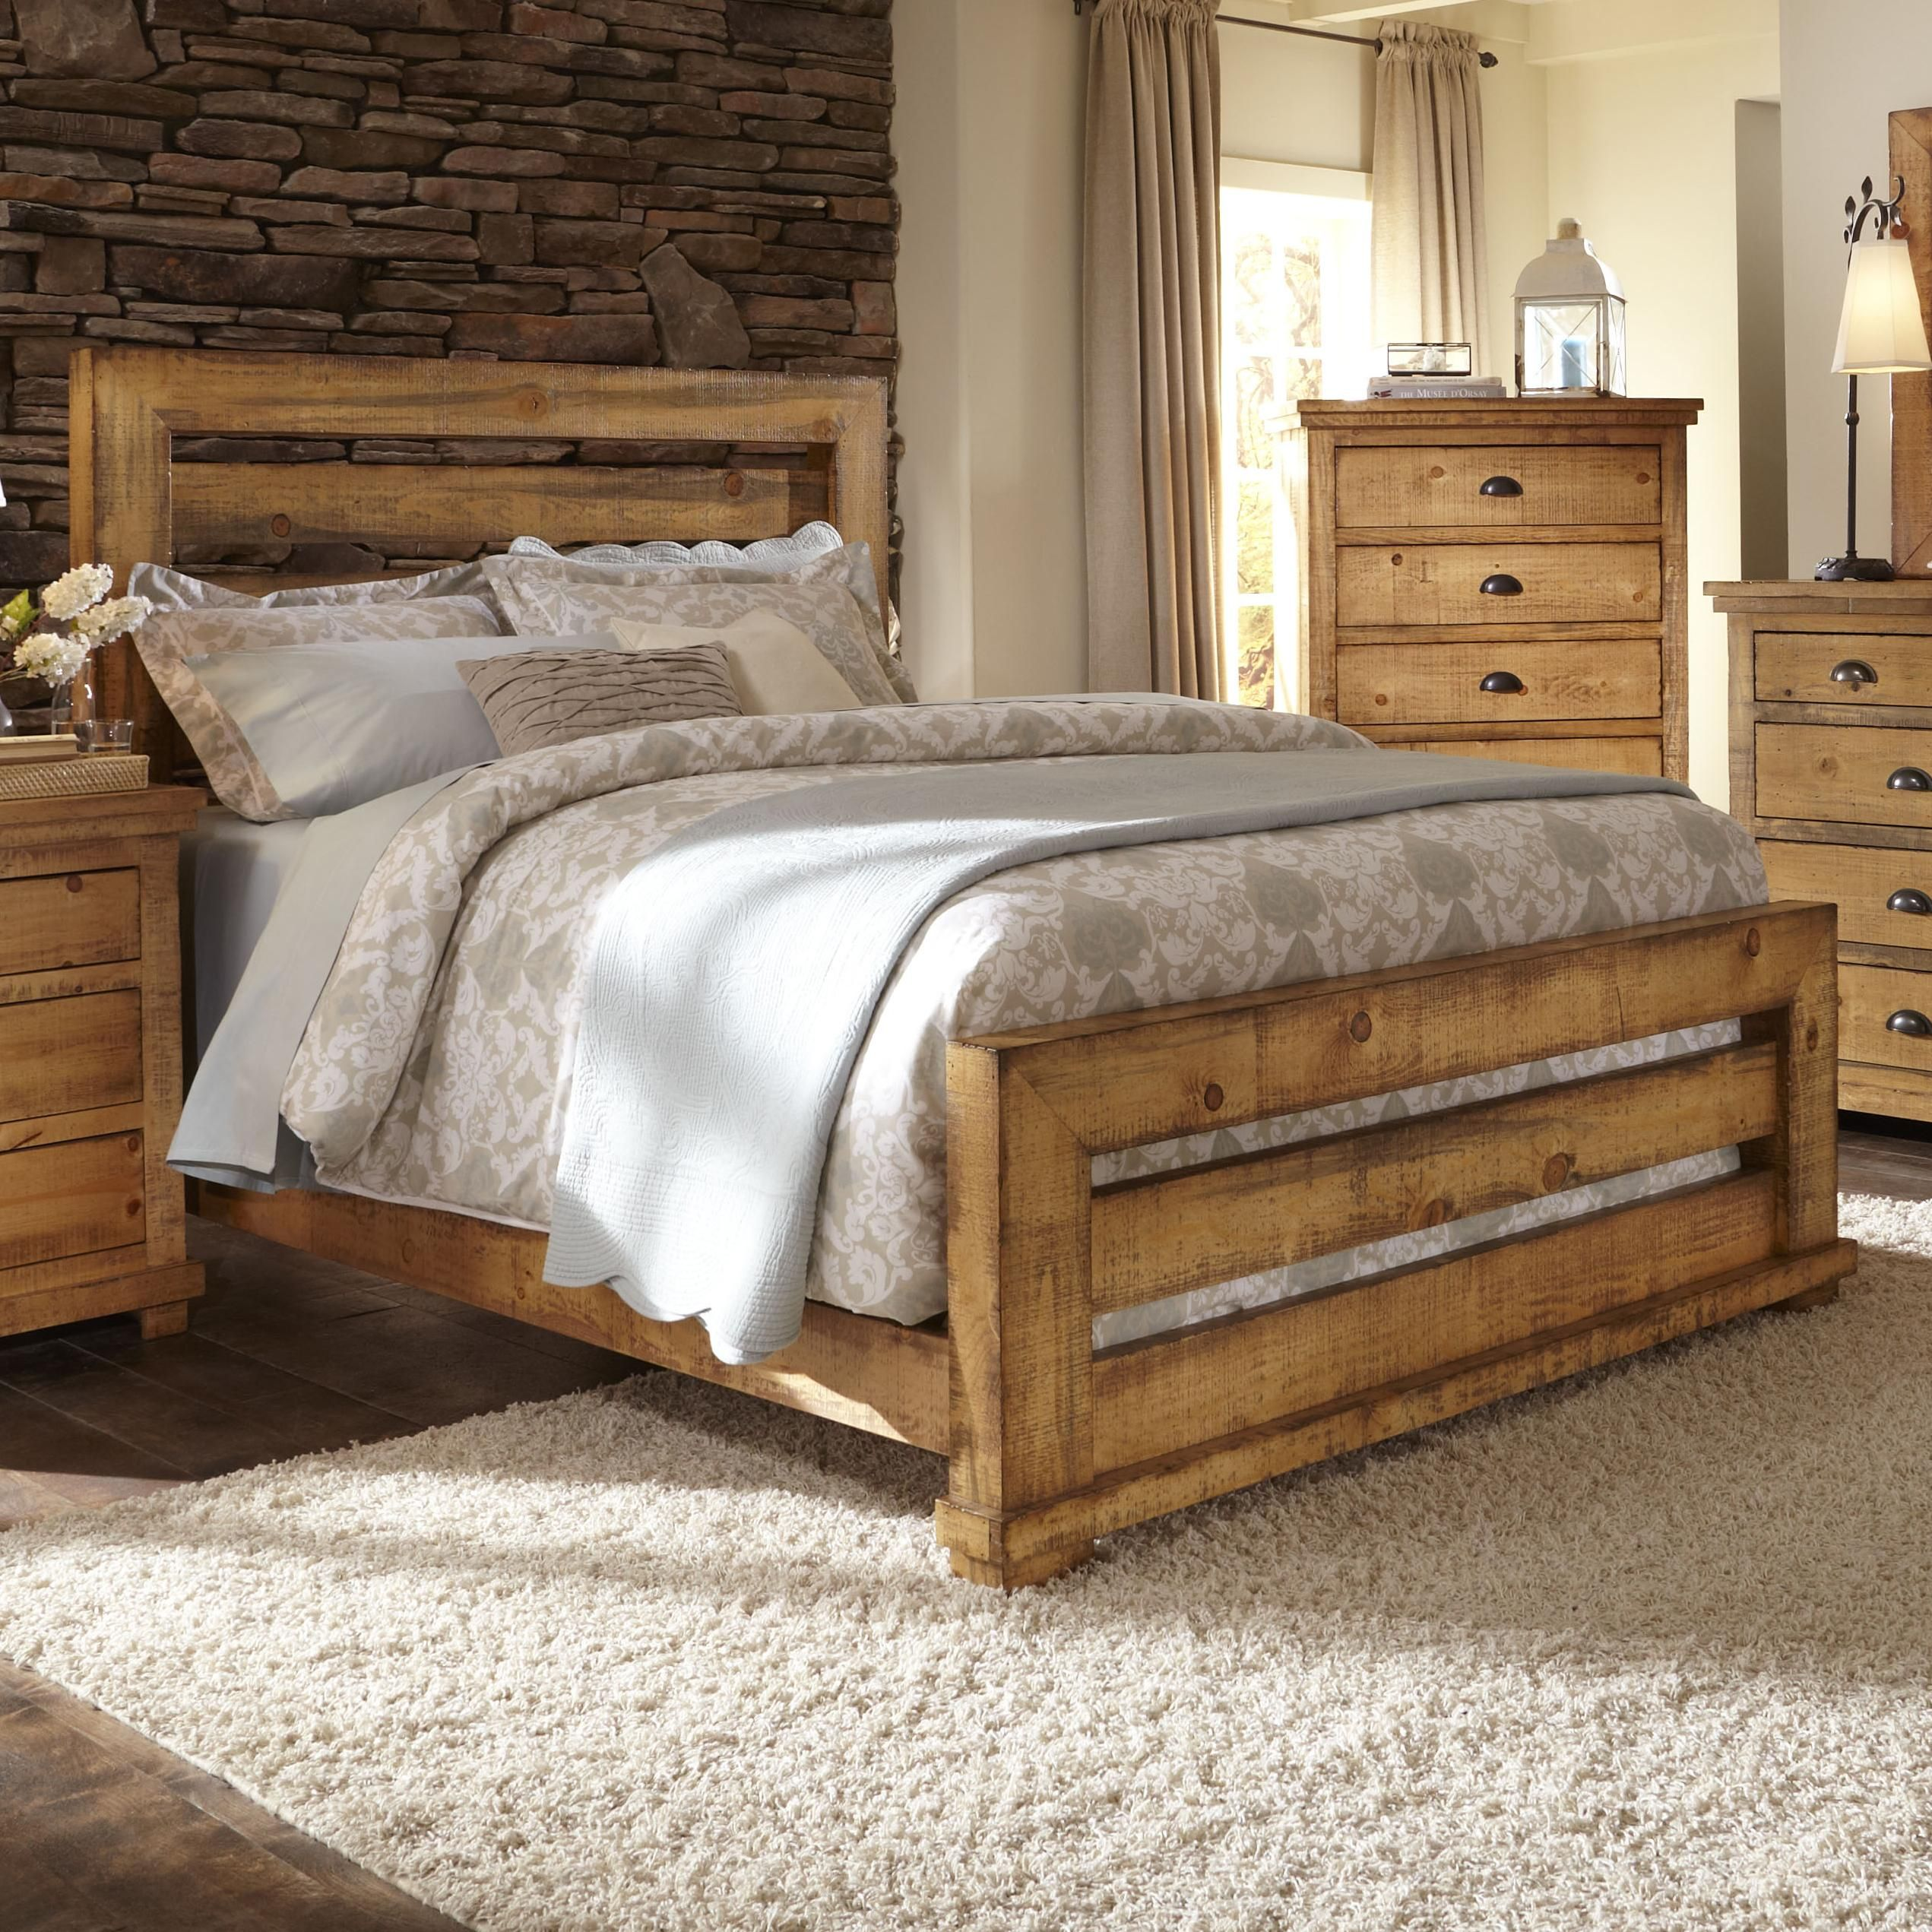 Progressive Furniture Willow King Slat Bed With Distressed Pine Frame Colder S Furniture And